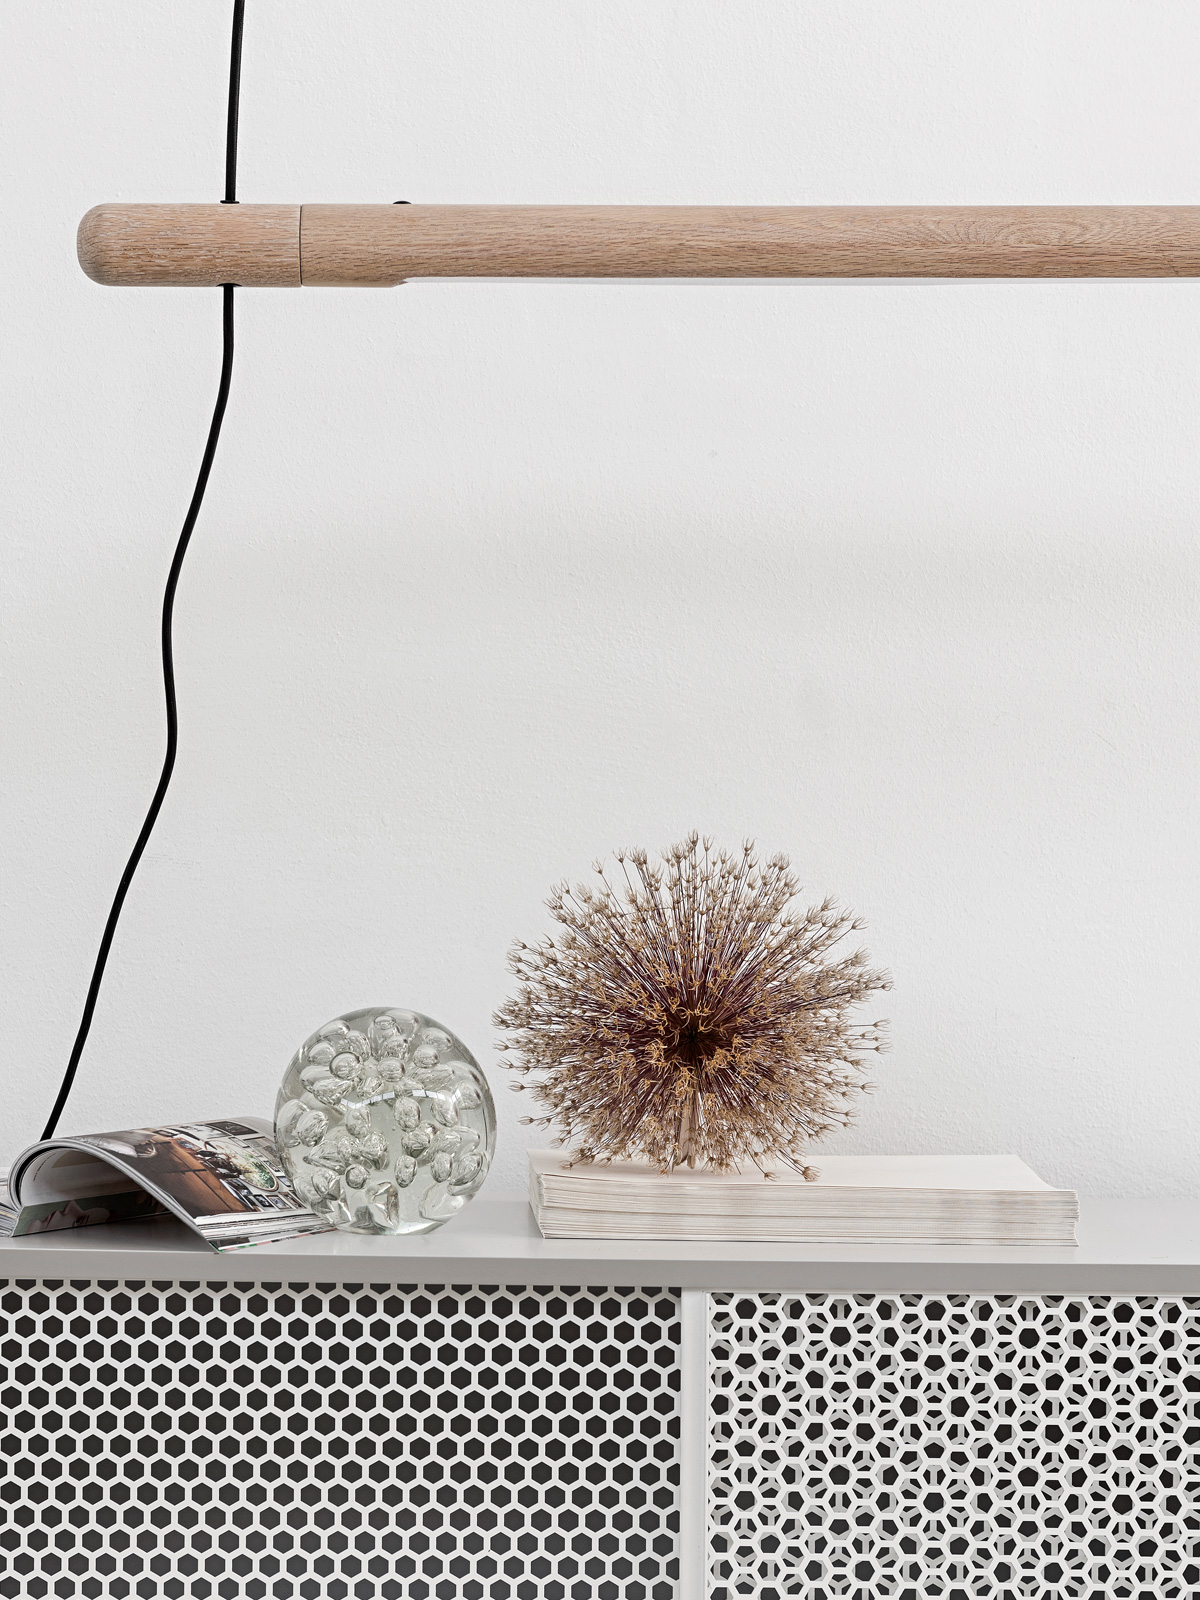 DesignOrt Blog: Holzlampen Palo Lamp LED Leuchte MUNK collective